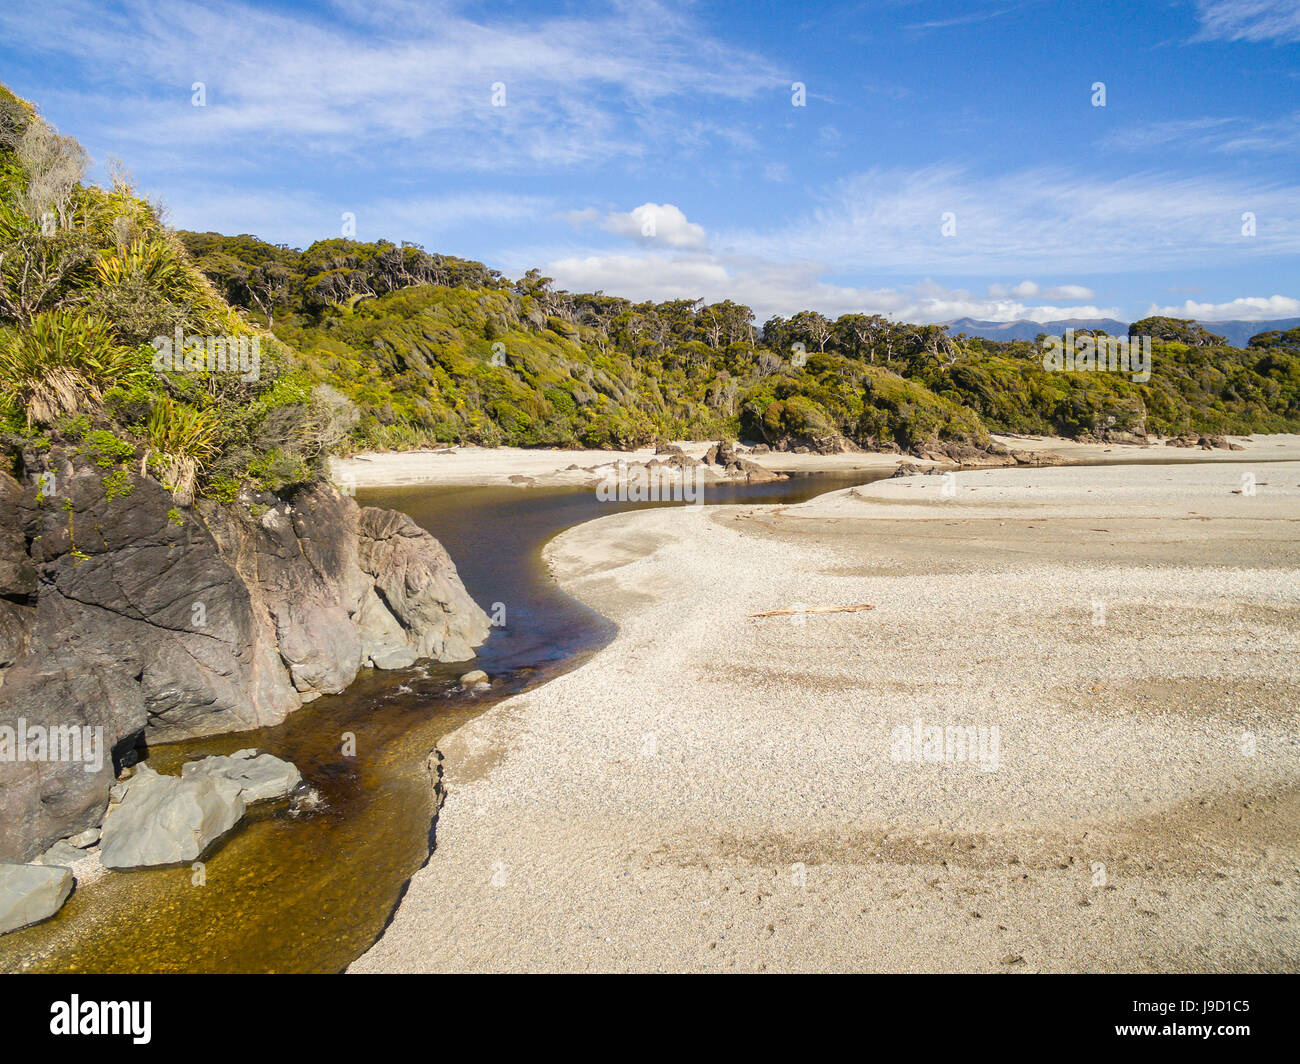 Beach with marshy river, Ship Creek, Haast, West Coast, New Zealand - Stock Image